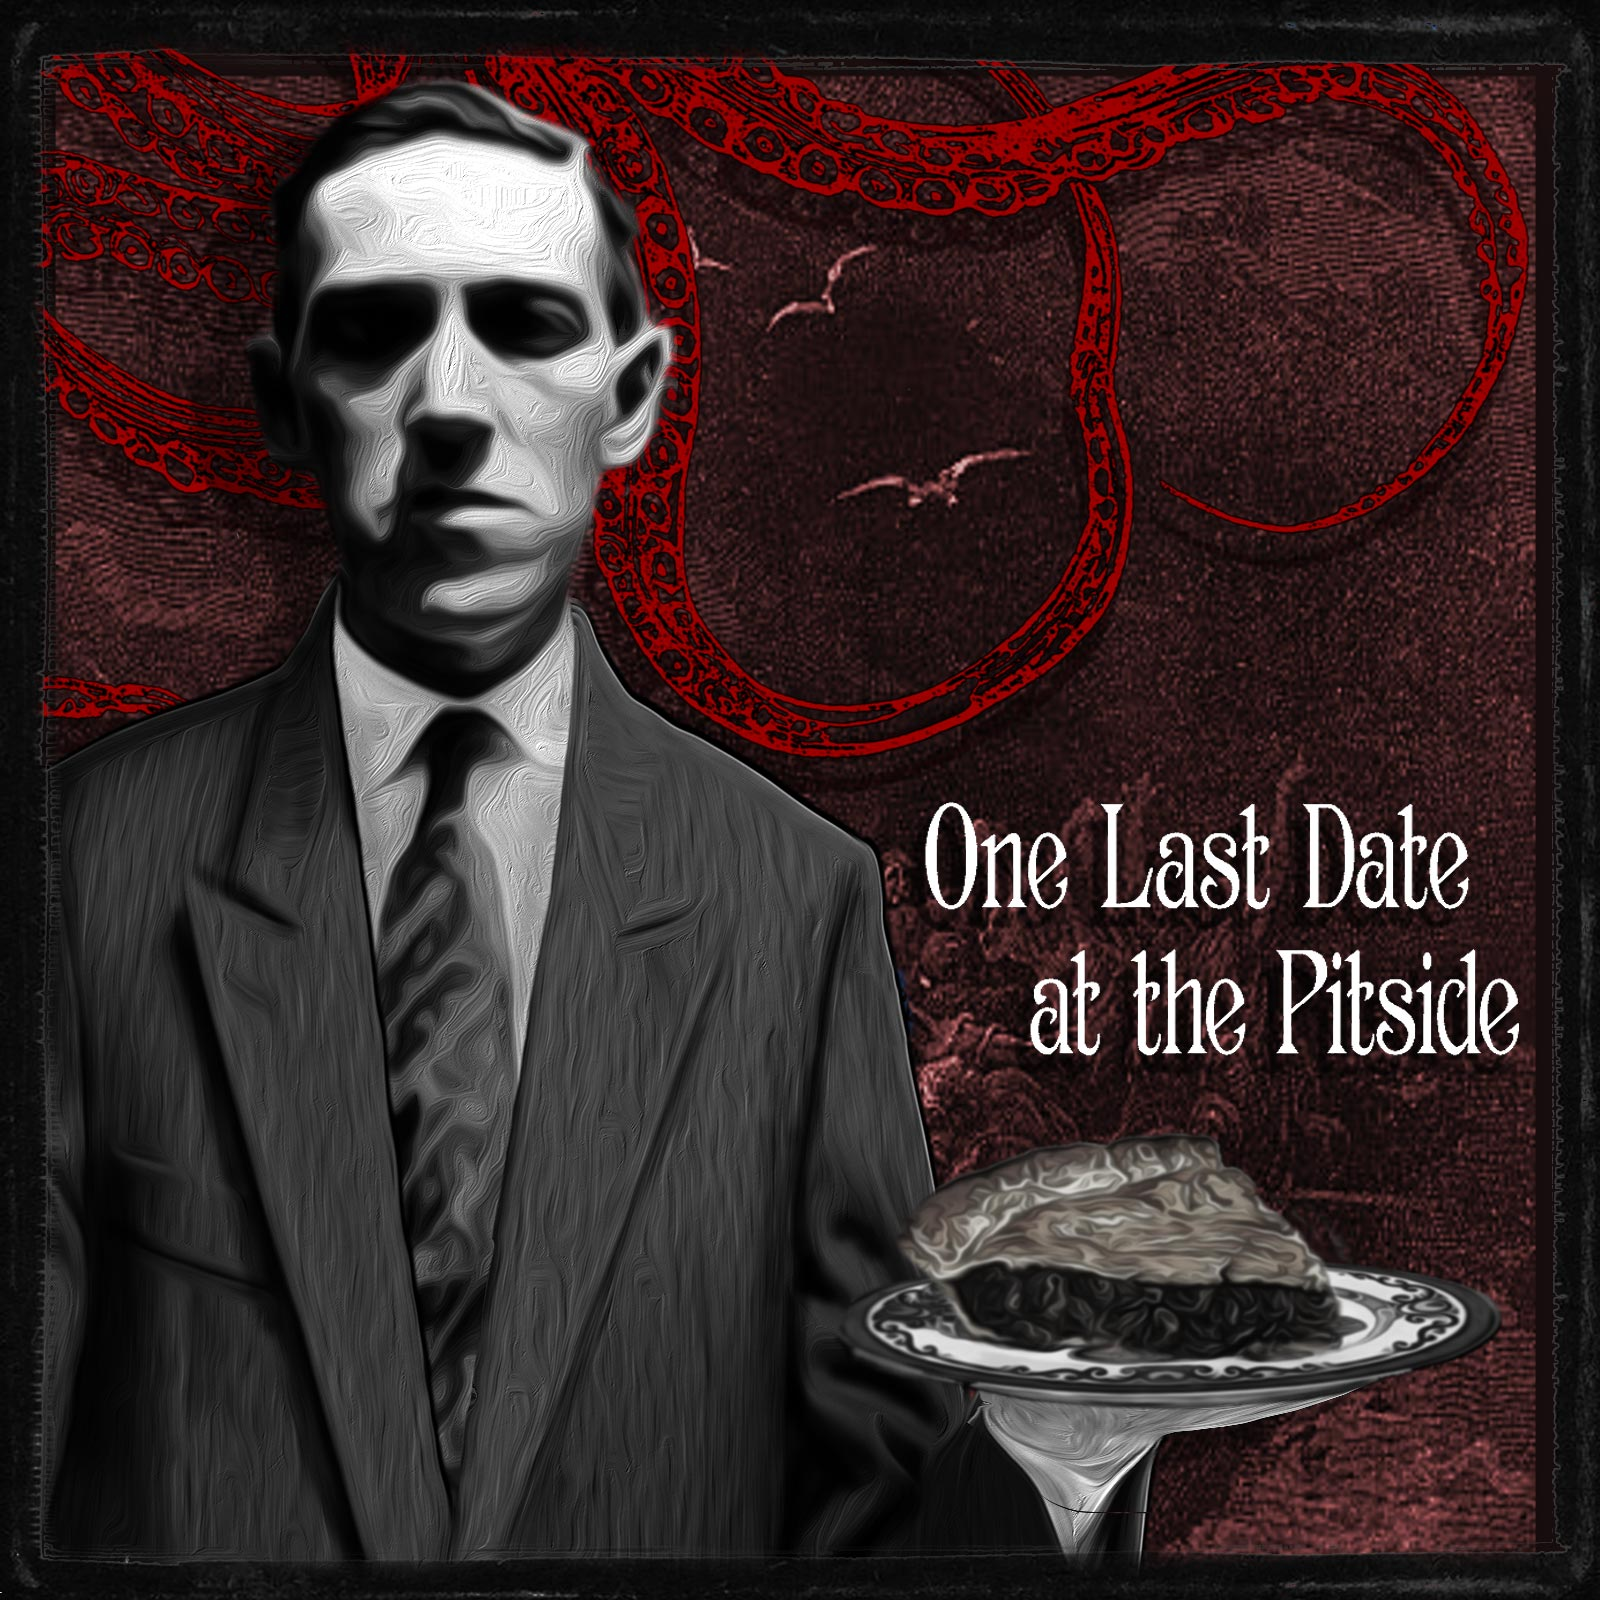 One Last Date at the Pitside by Sebastien Mantle